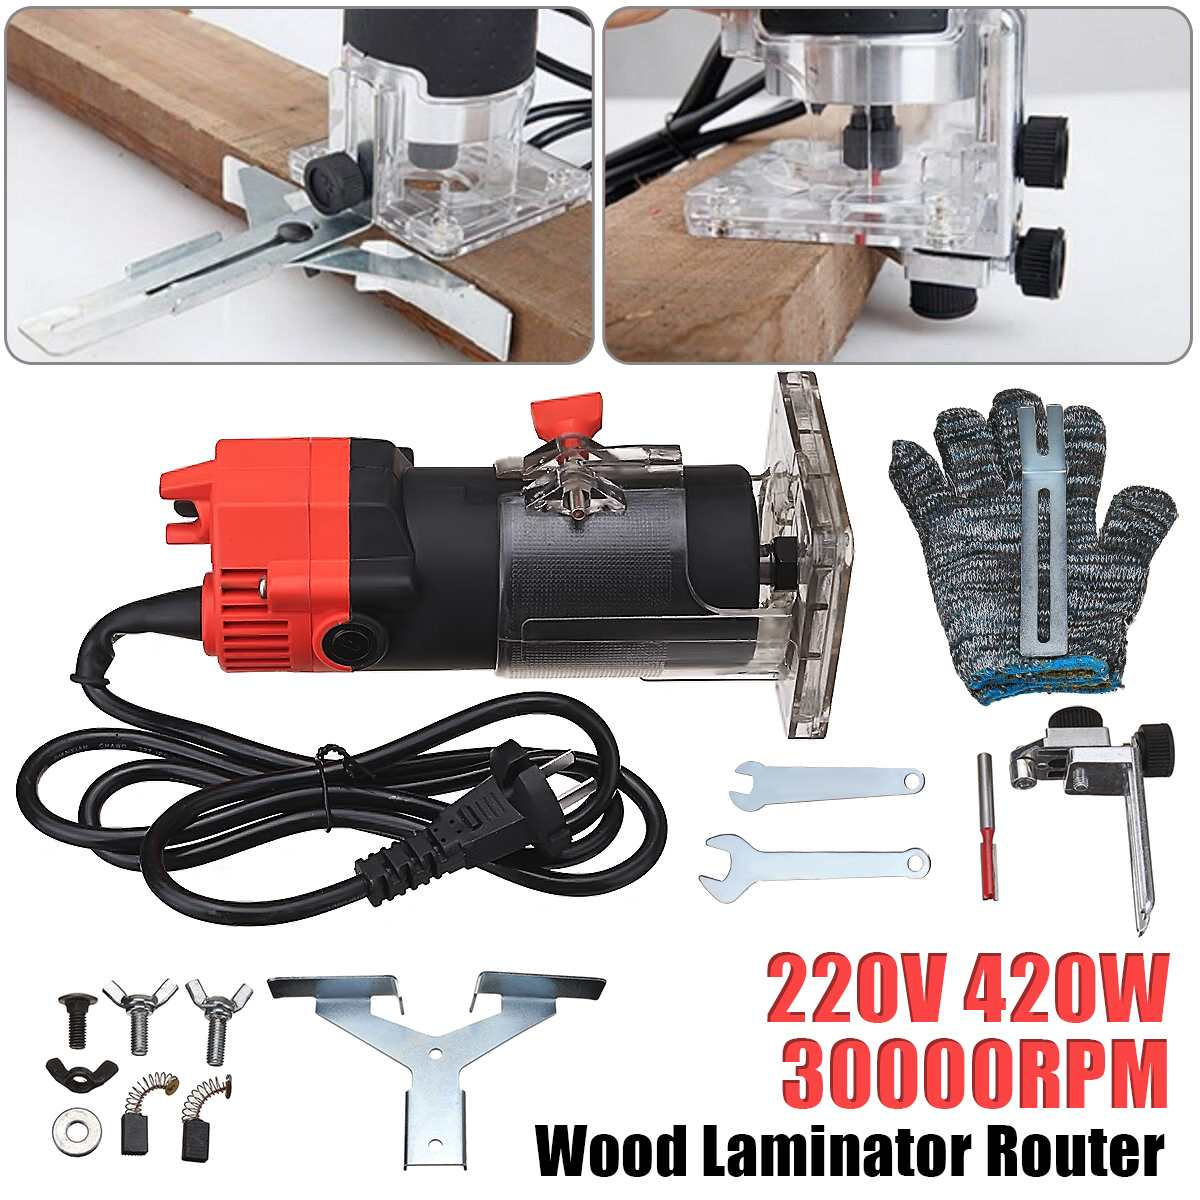 New 220V 420W 30000RPM Electric Edge Trimmer Multi Function Woodworking Machine Wood Edge Cutter/Router Set + Wrench GlovesNew 220V 420W 30000RPM Electric Edge Trimmer Multi Function Woodworking Machine Wood Edge Cutter/Router Set + Wrench Gloves